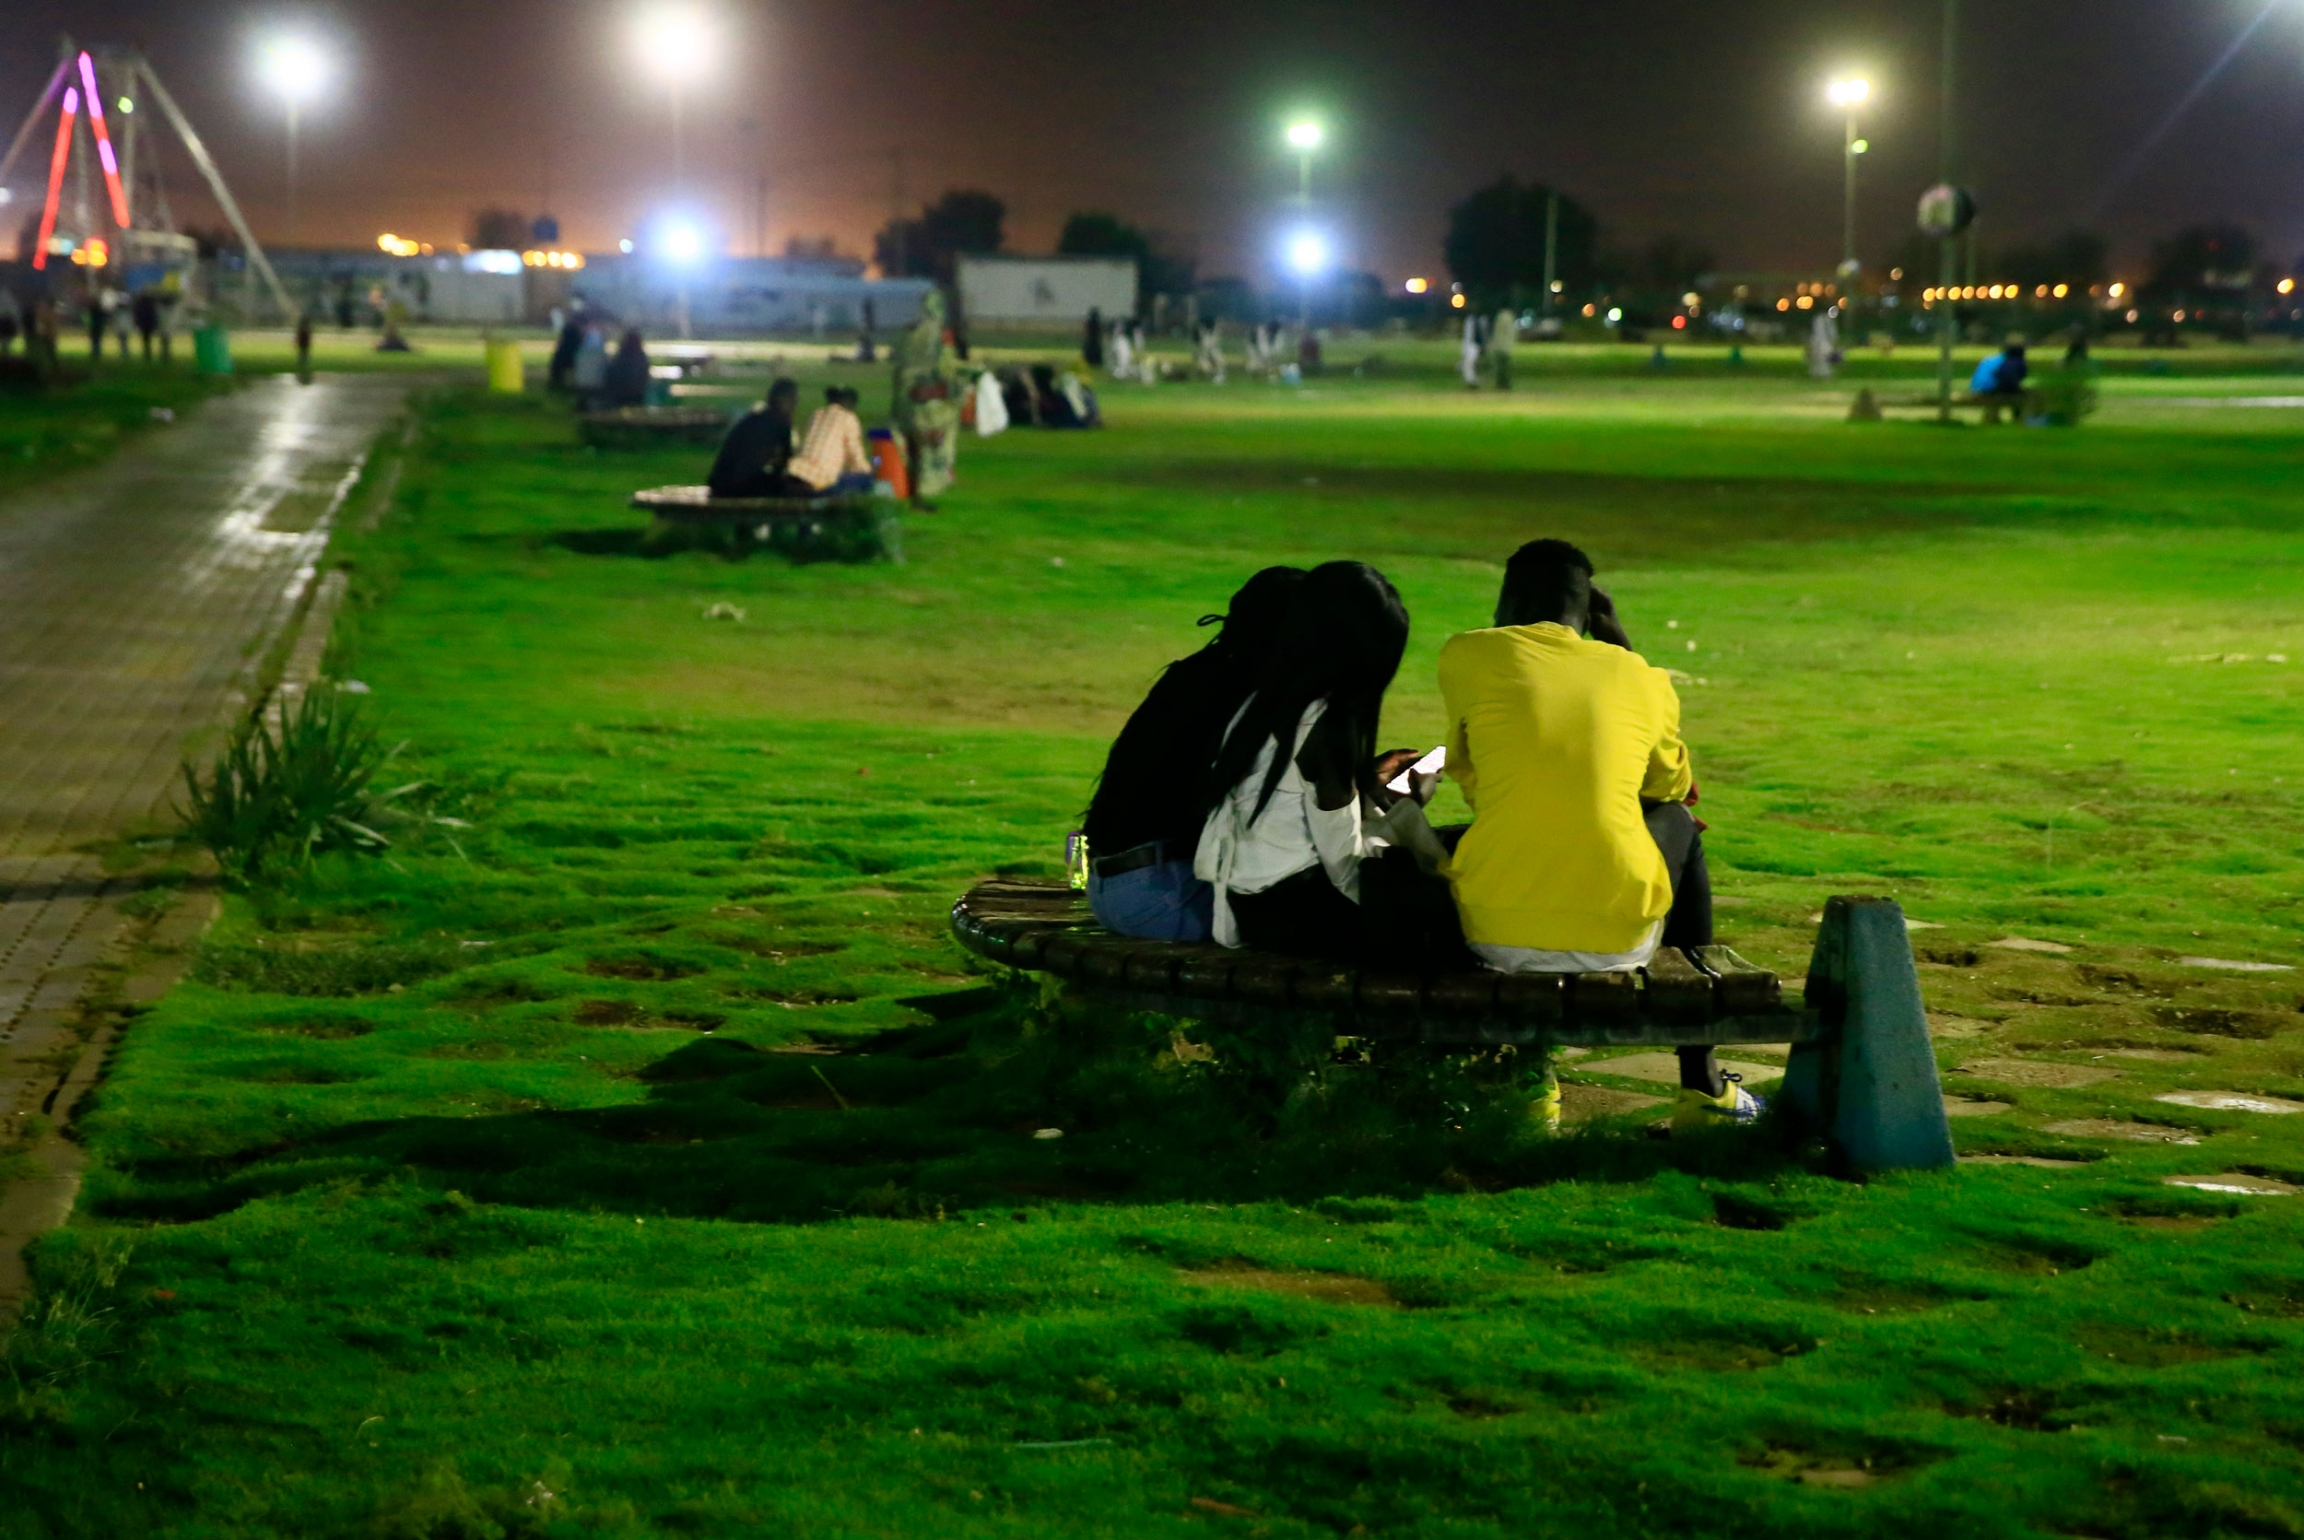 Three people are shown with one person wearing a yellow shirt while sitting on a curved metal bench amid a large grassy area.